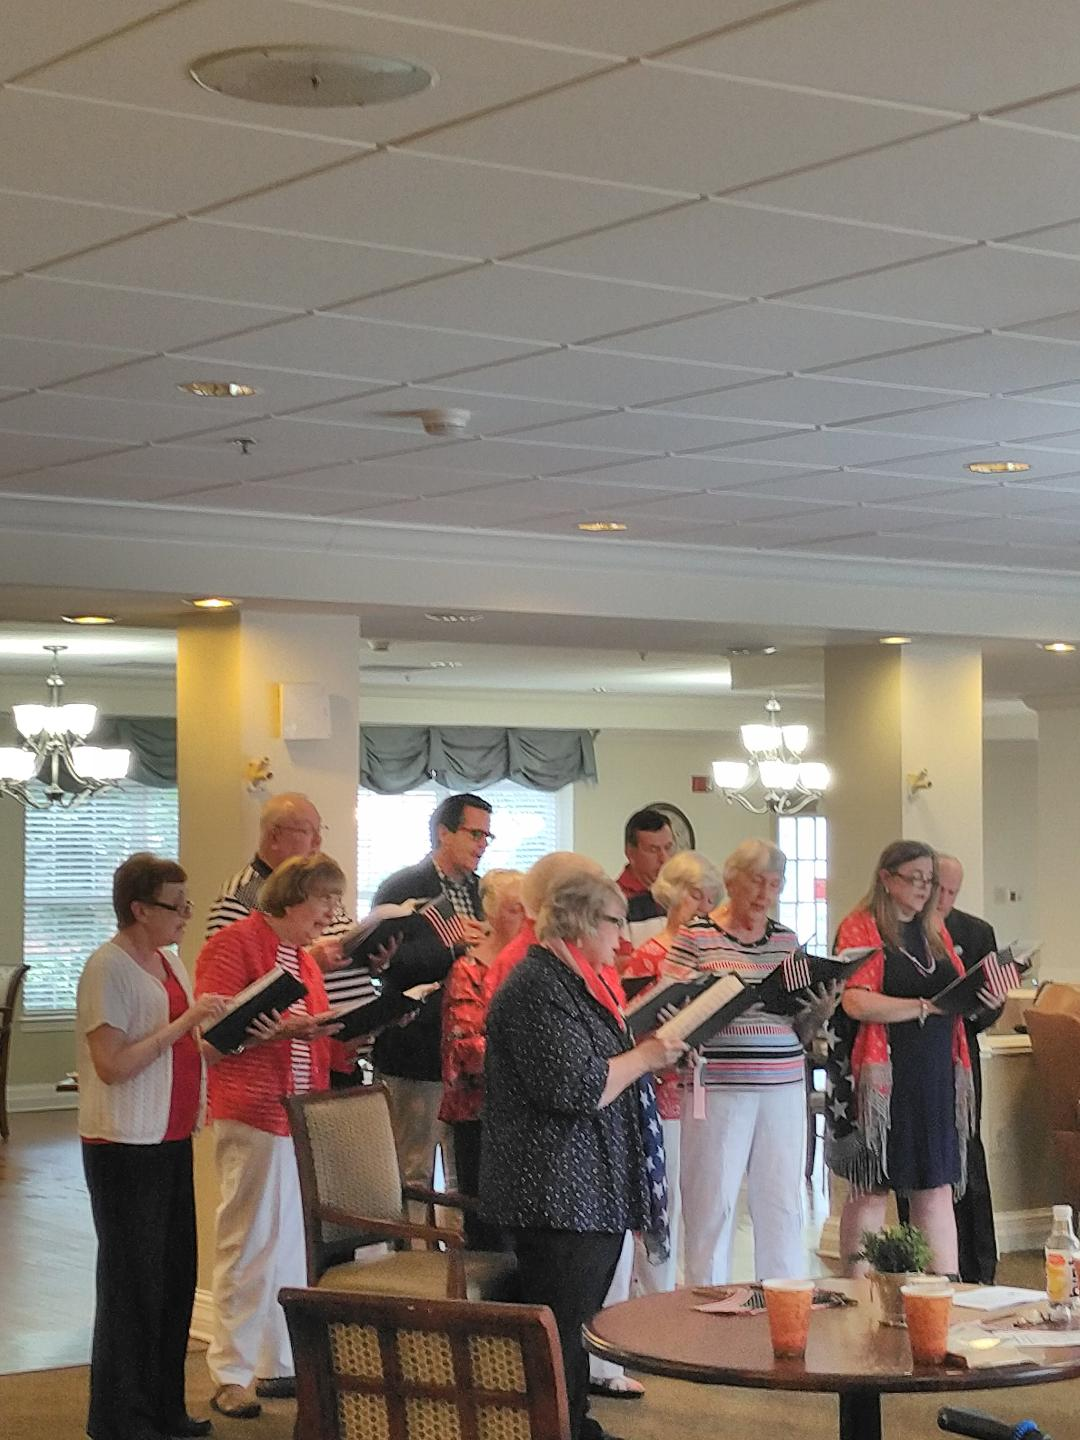 Patriotic Concert at Brookside Assisted Living - Recently our choir presented a program of patriotic music to the patients at Brookside Assisted Living. Though it was enjoyable to share the music, the choir especially enjoyed interaction with all the new friends they met at Brookside.